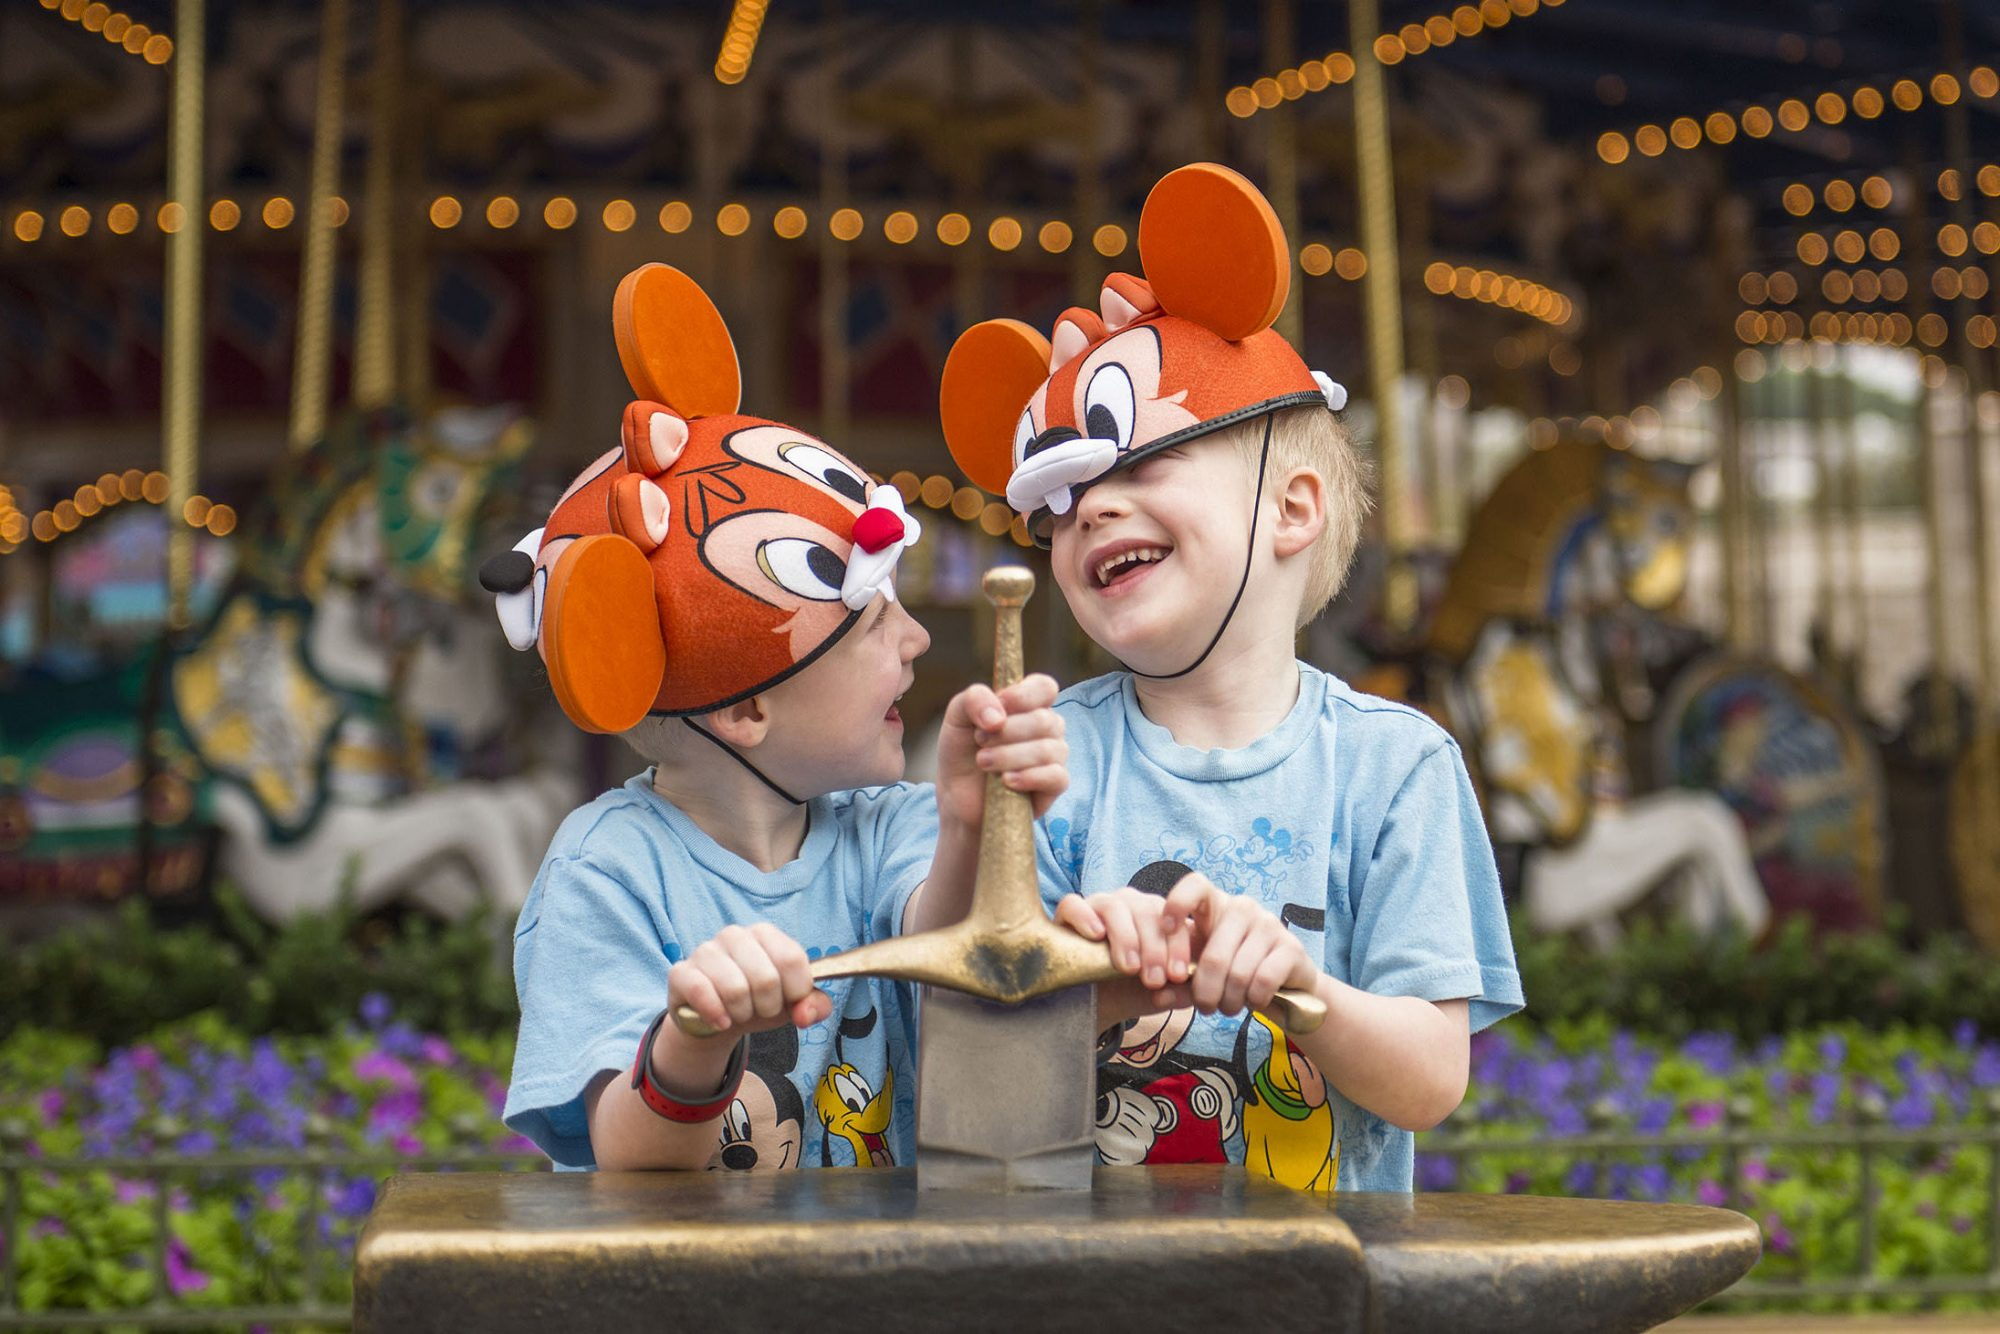 Fun with Little Ones at Magic Kingdom